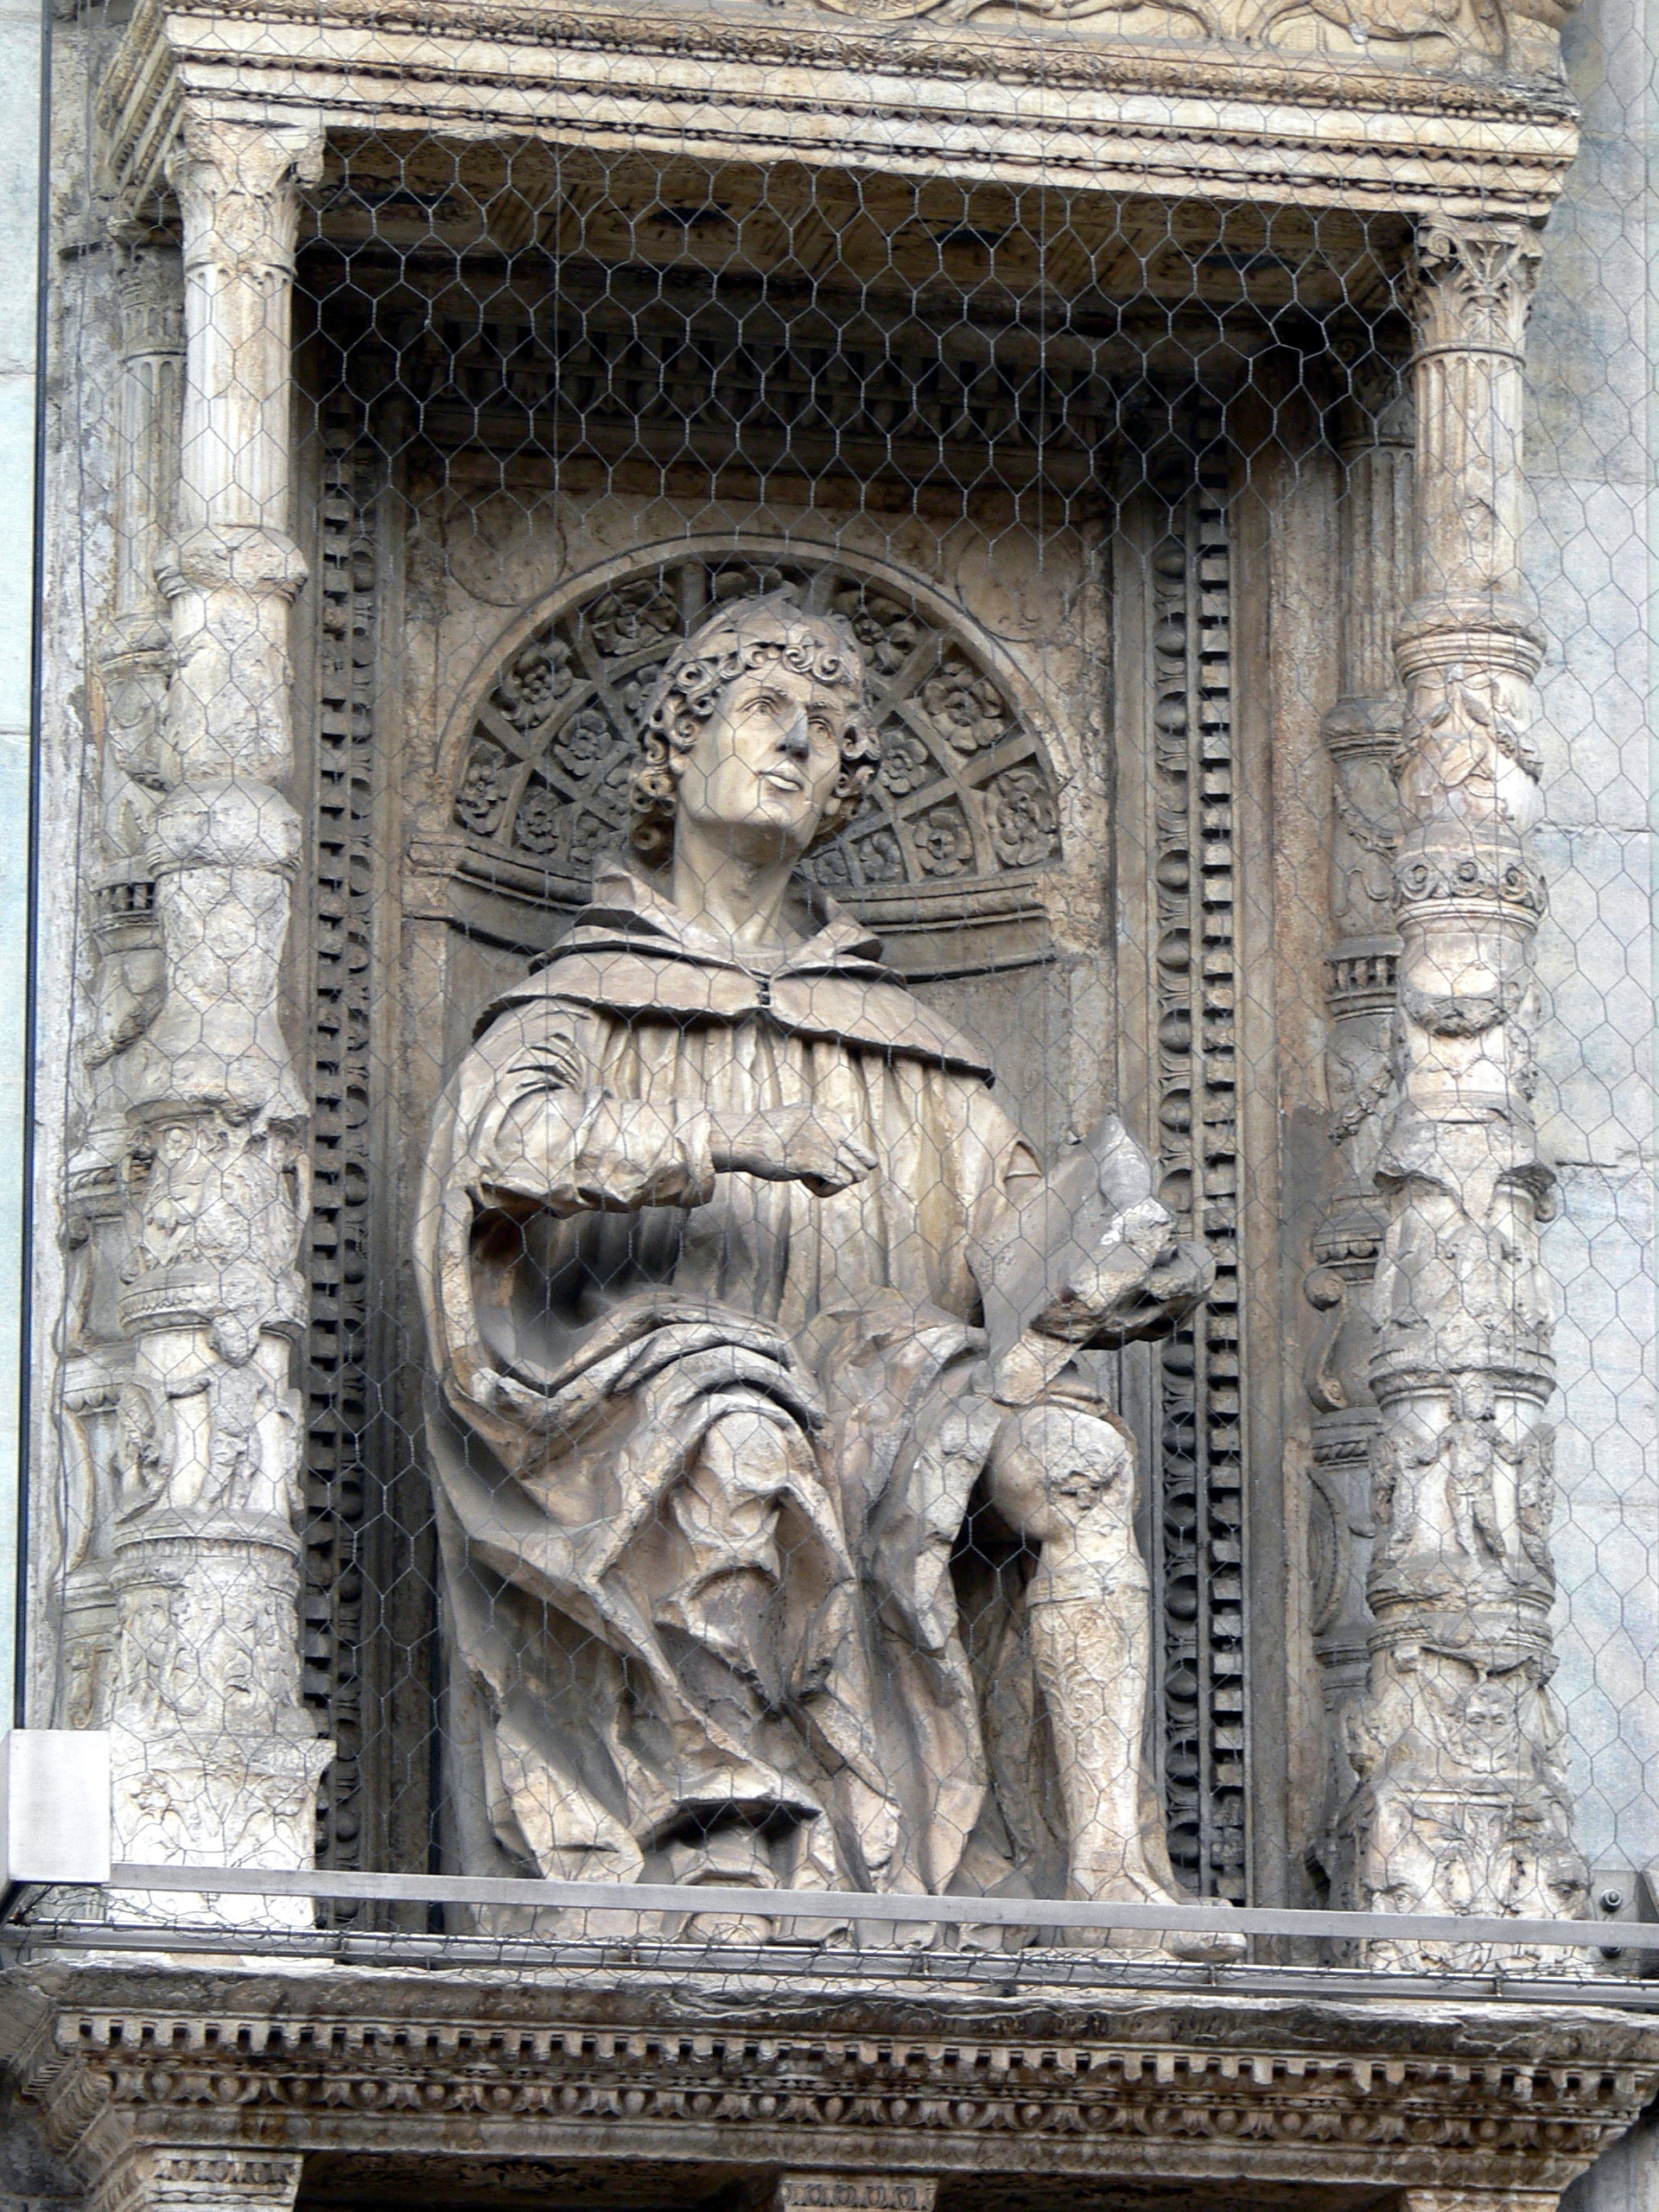 Statue of Pliny the Elder on the facade of Cathedral of S. Maria Maggiore in [[Como]]